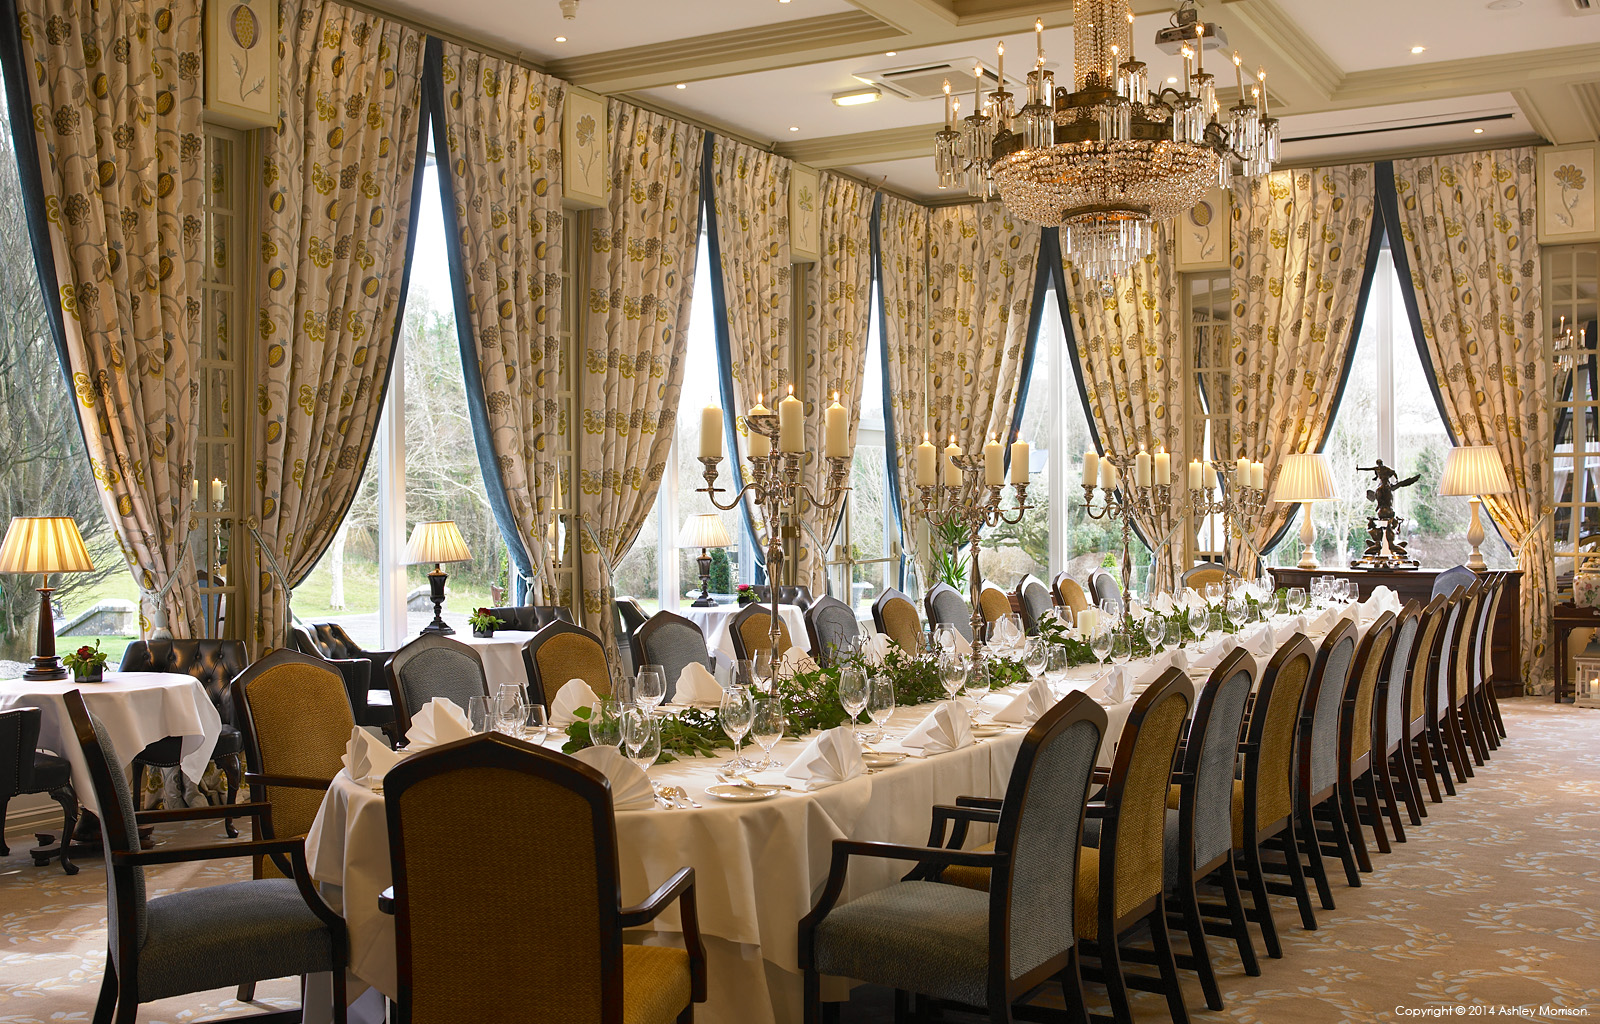 The Terrace Room set-up for a business meeting at Dromoland Castle in County Clare by Ashley Morrison.